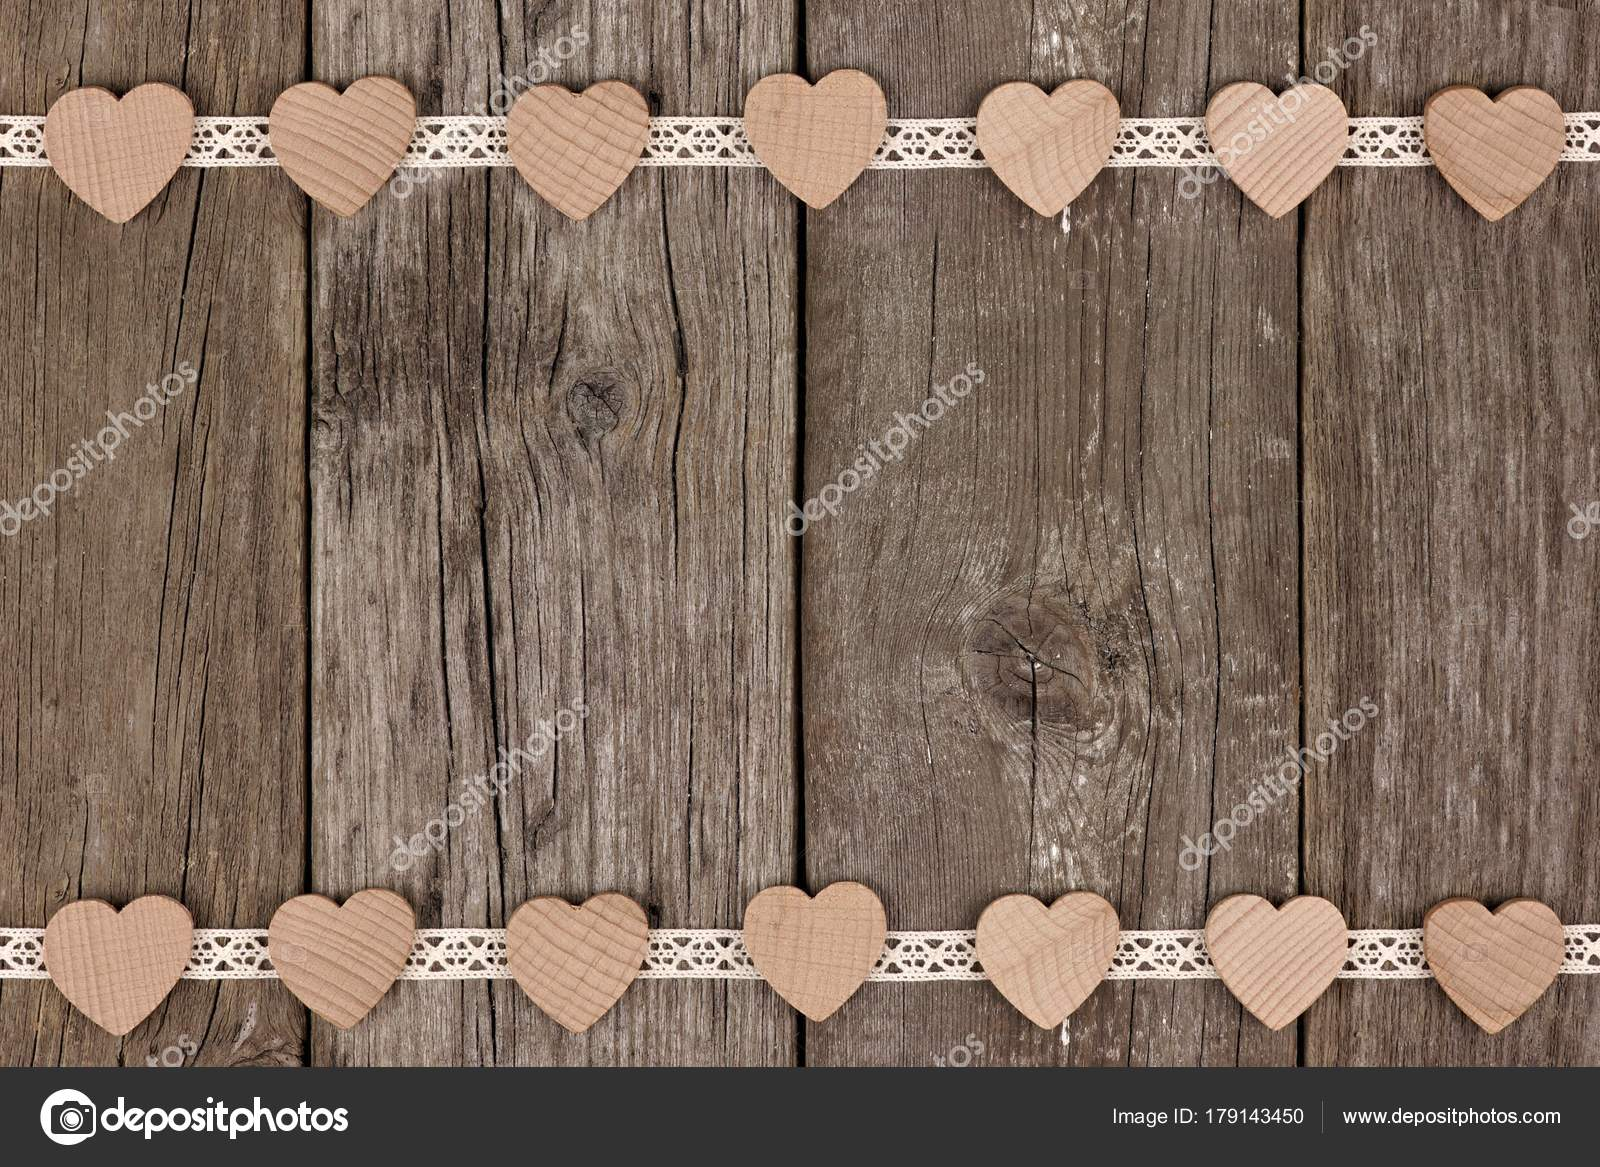 Double Border Of Wooden Hearts And Ribbon Lace Over A Rustic Background Photo By JeniFoto